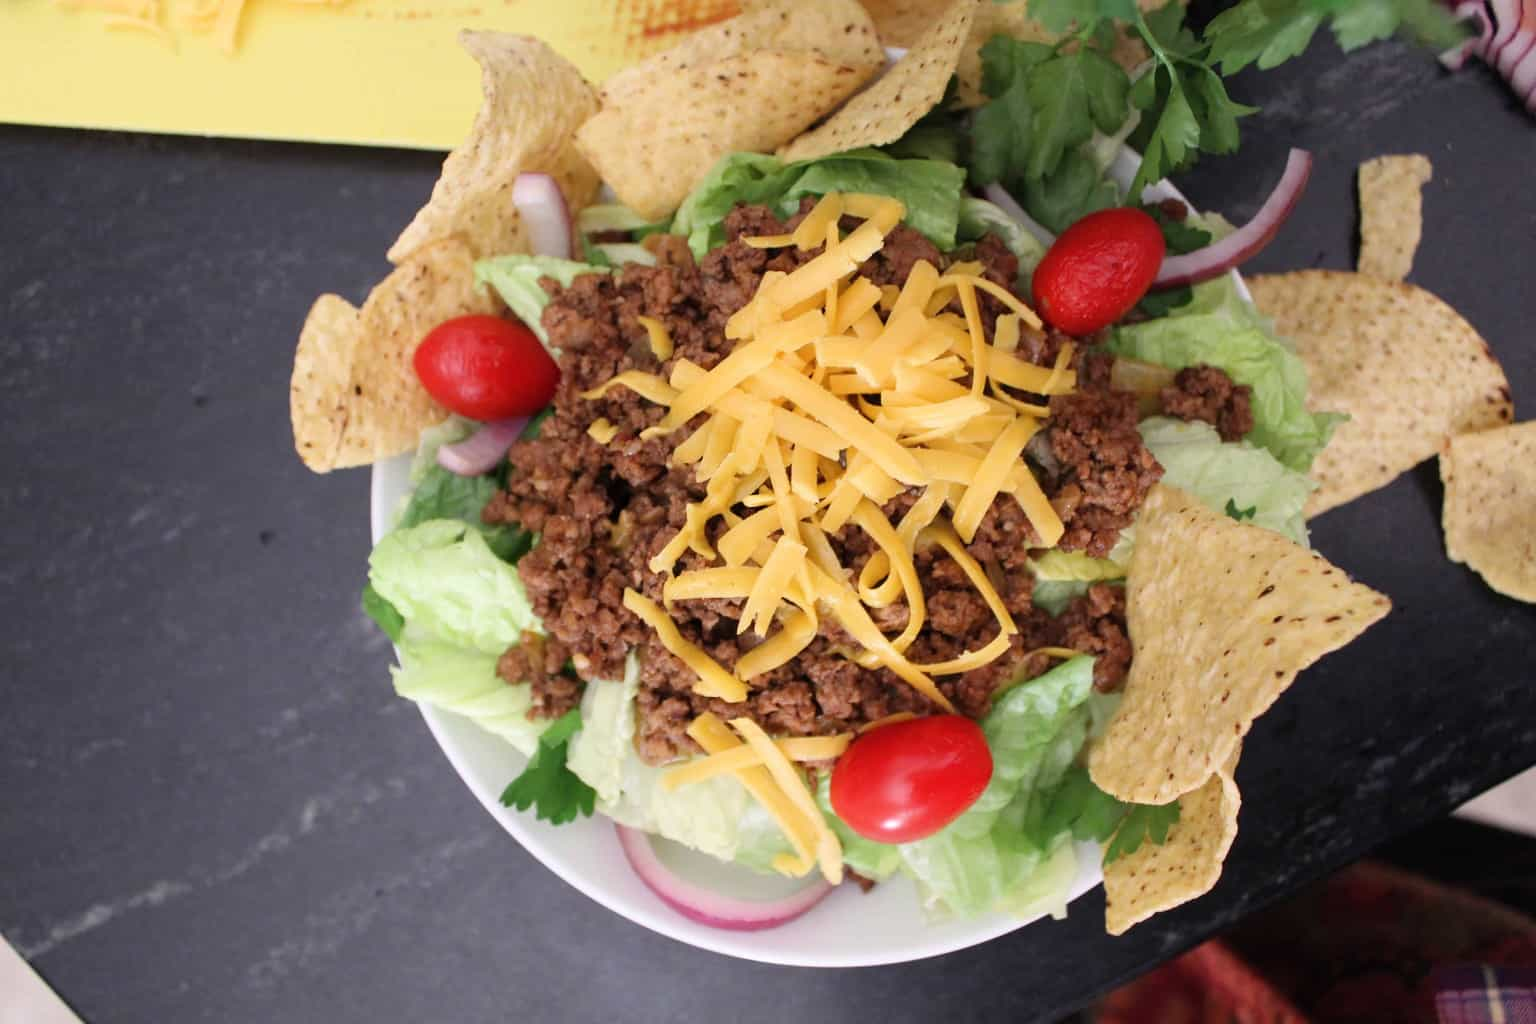 Taco Salad garnished with cheddar cheese, cherry tomatoes and tortilla chips